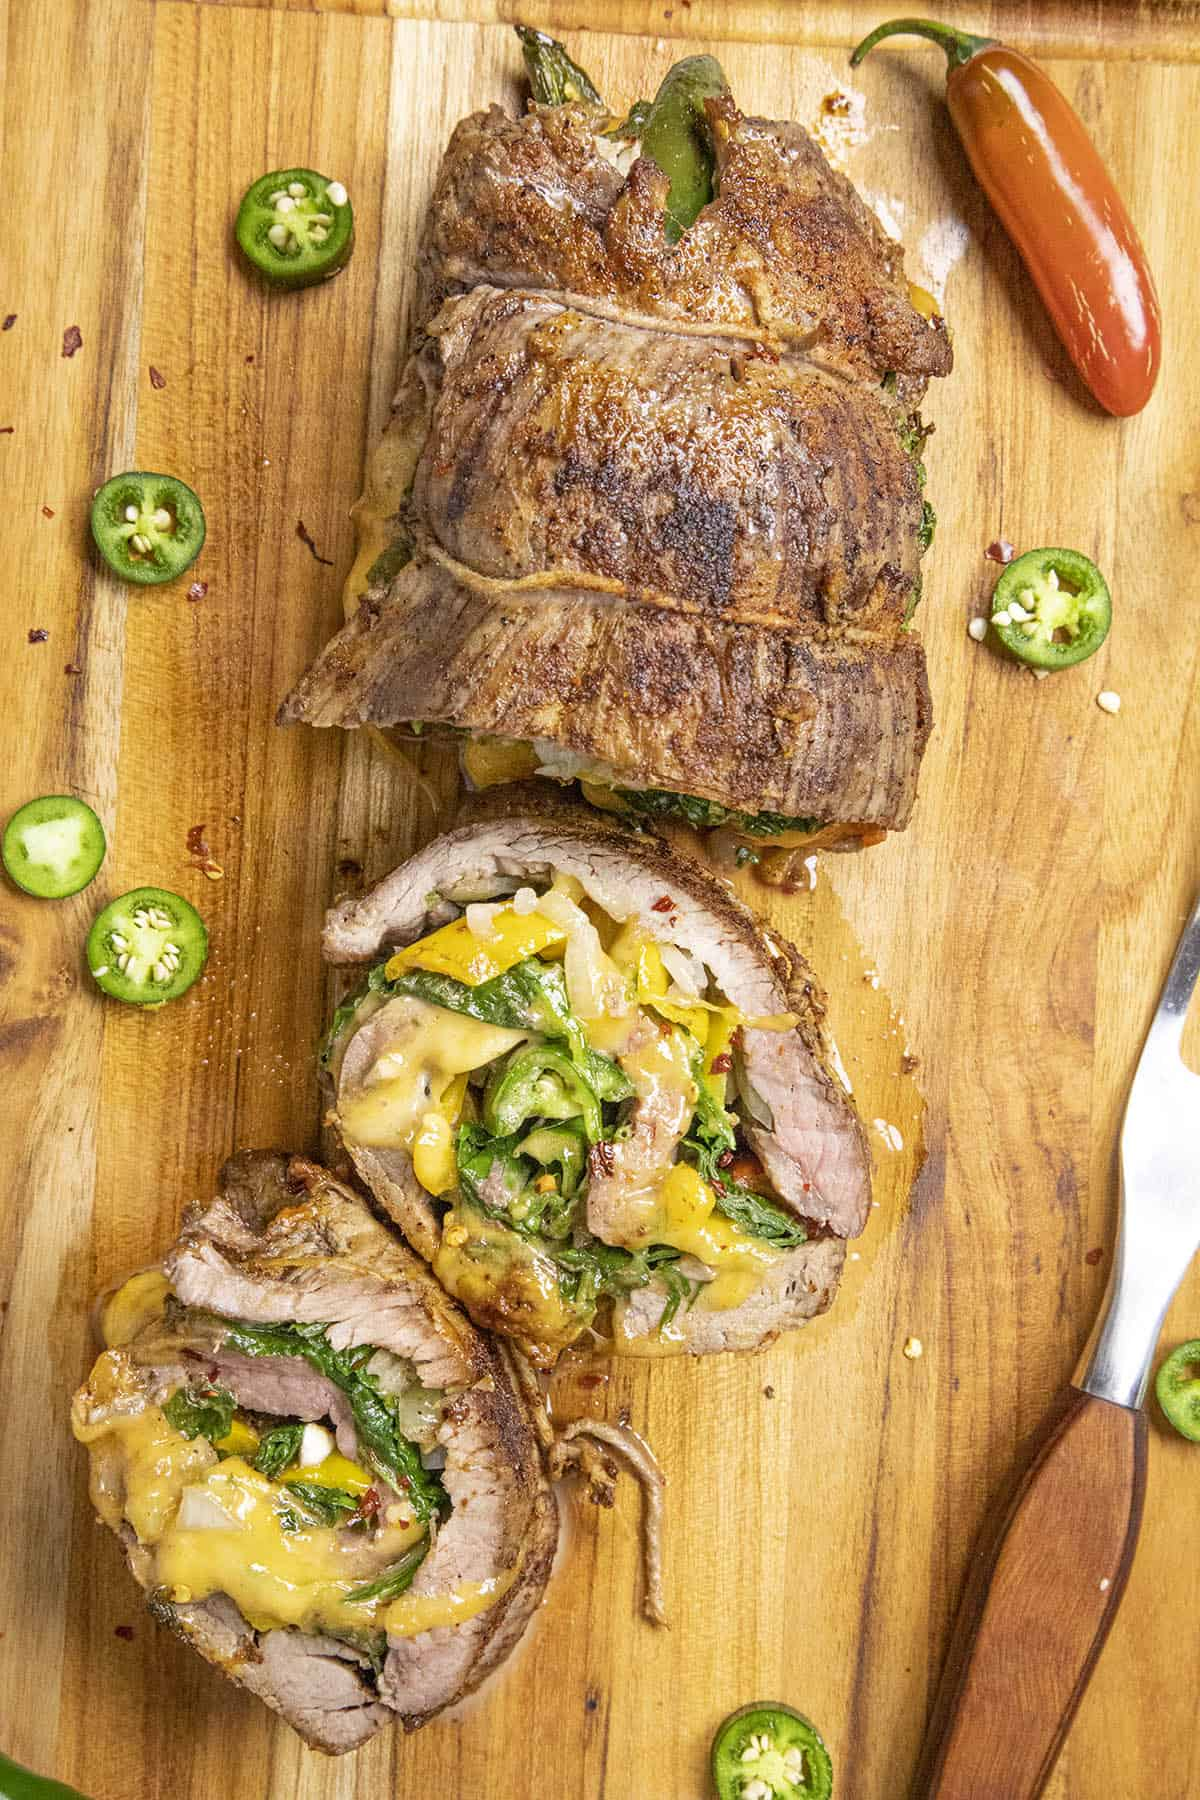 Spinach, Cheese and Chili Stuffed Flank Steak on a cutting board